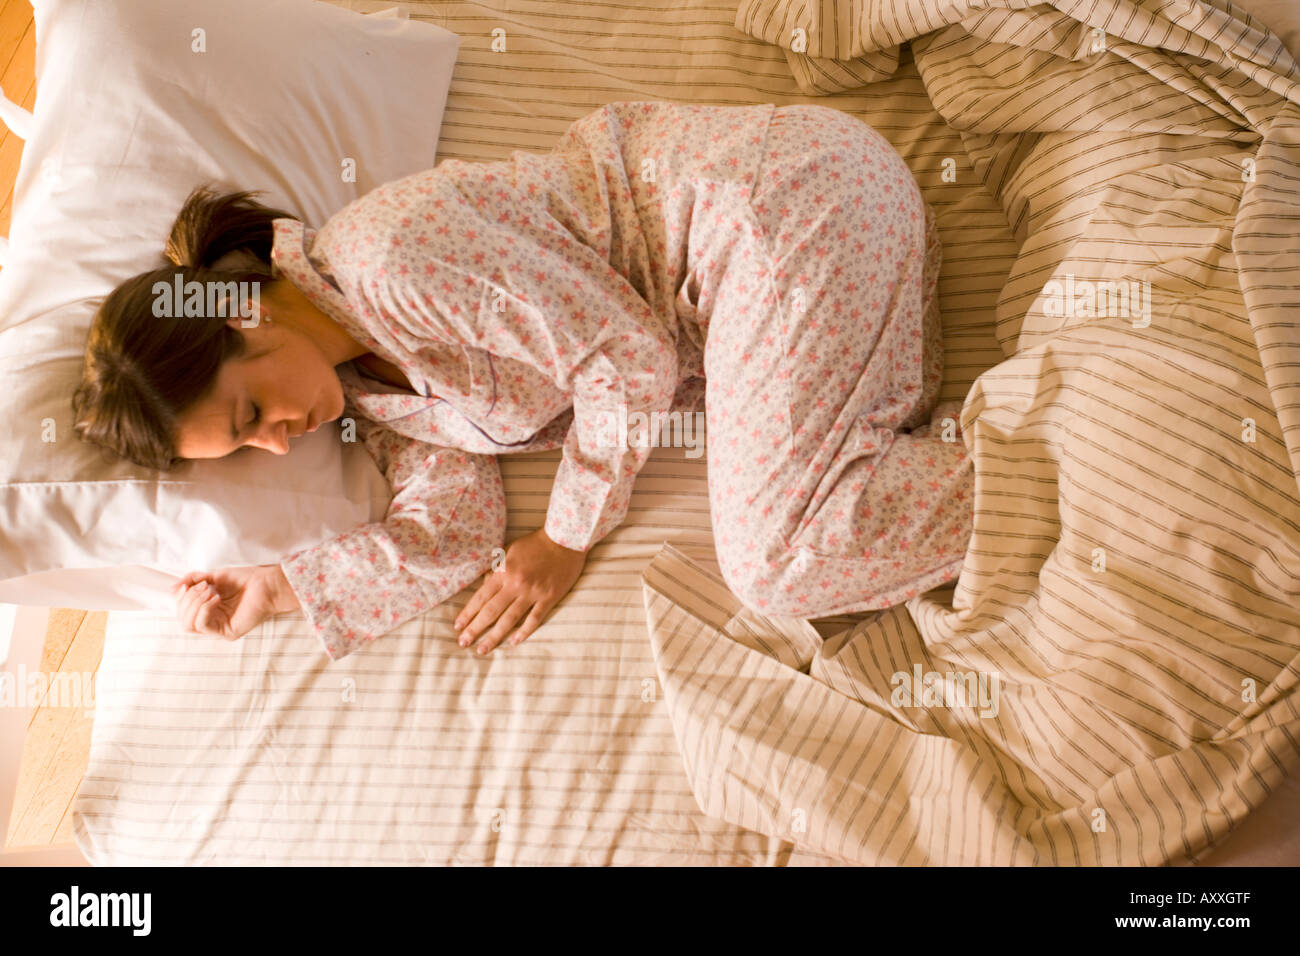 Woman sleeping in the fetal position in her pajamas in bed. - Stock Image